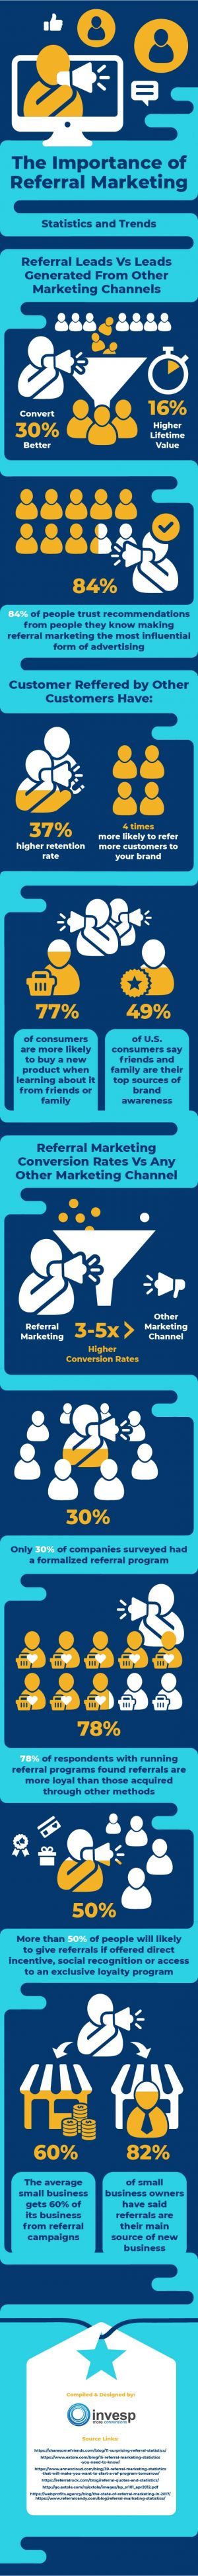 Referral Marketing is the Real Deal